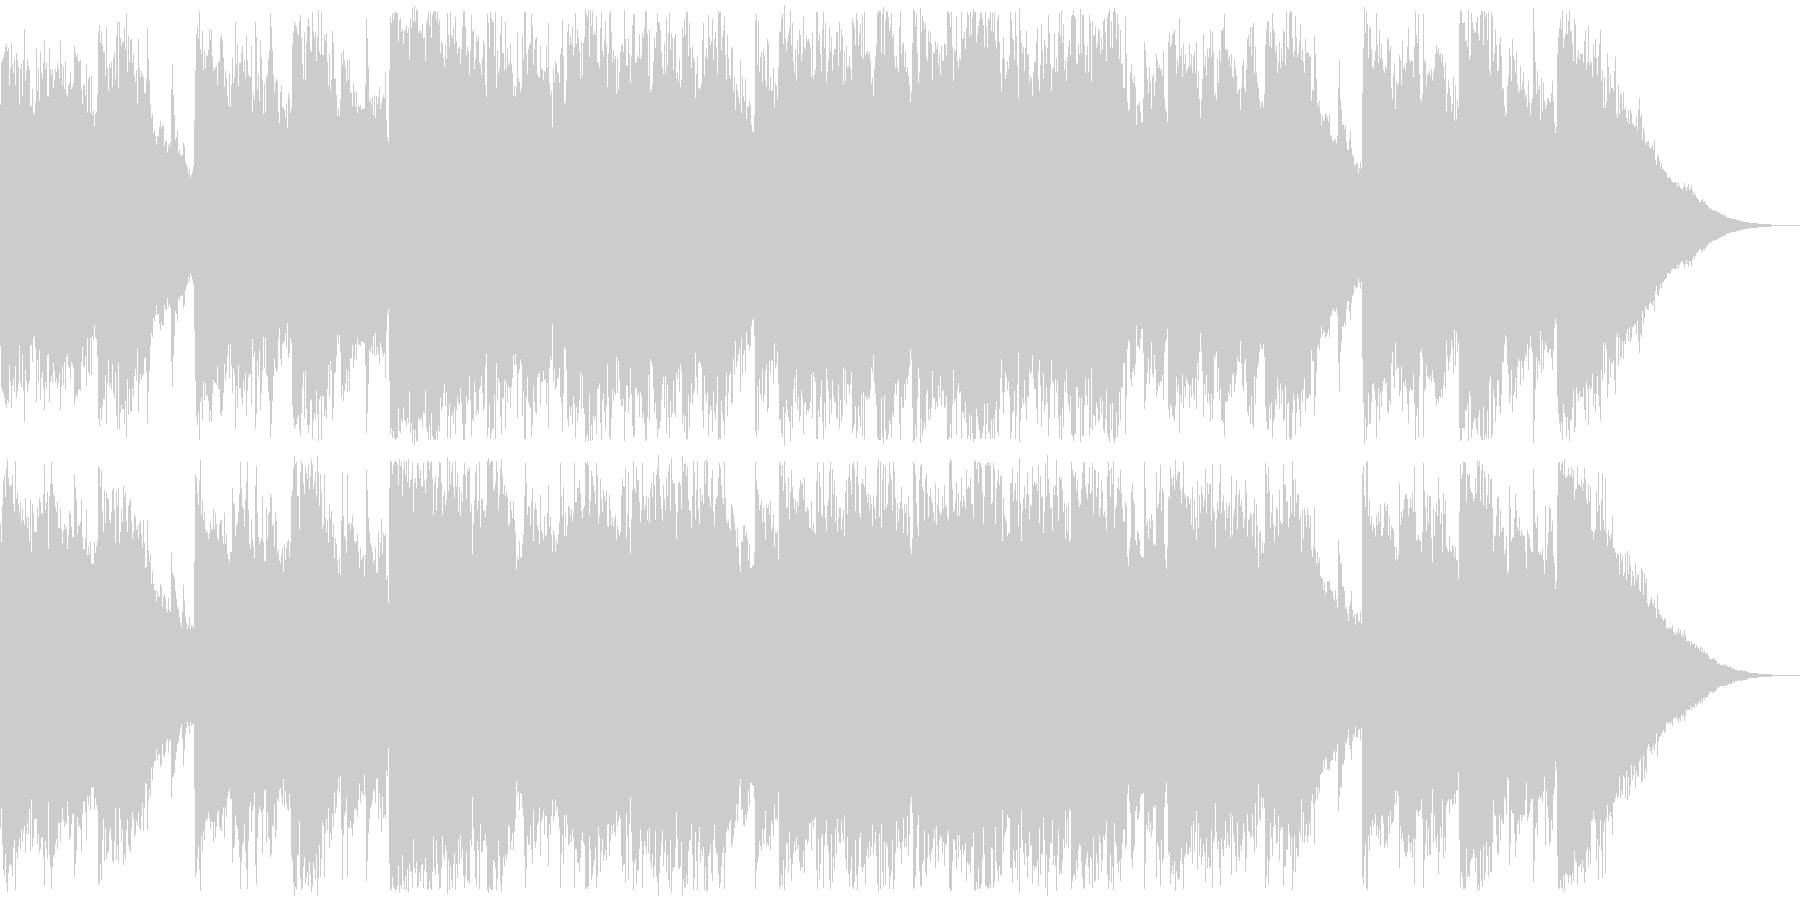 Refreshing commercials, Western music, female vocal pops's unreproduced waveform